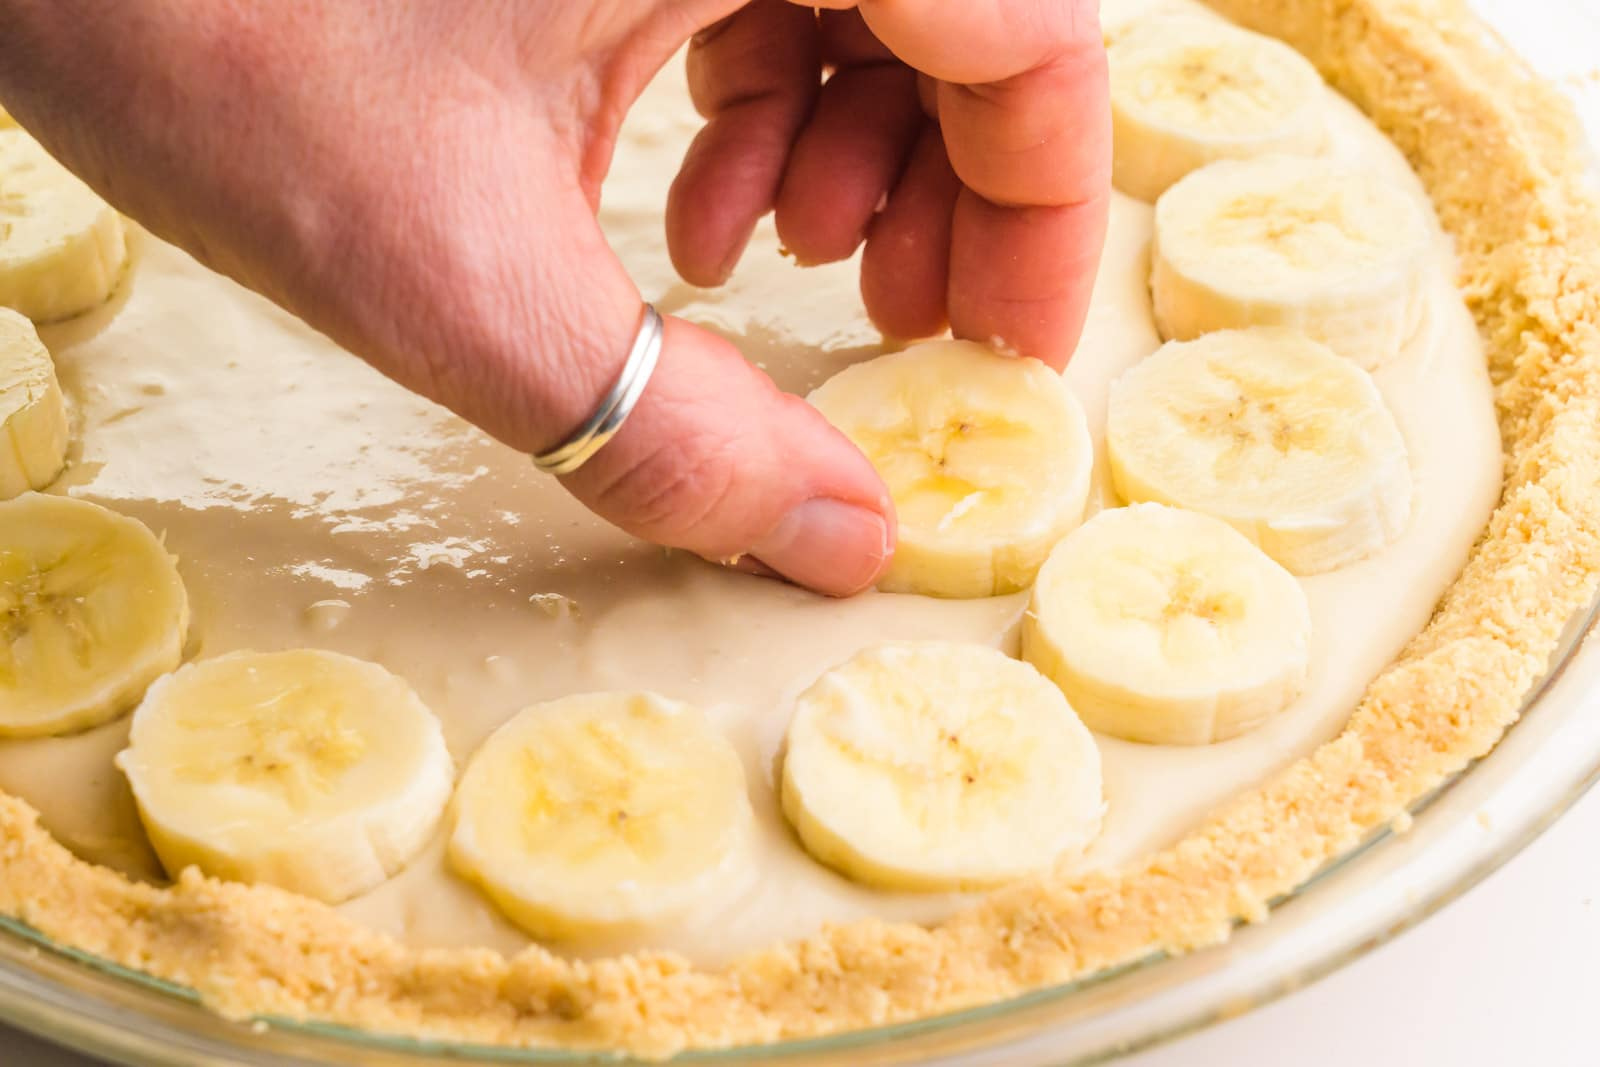 A hand is placing sliced bananas on a pie filled with vanilla pudding.